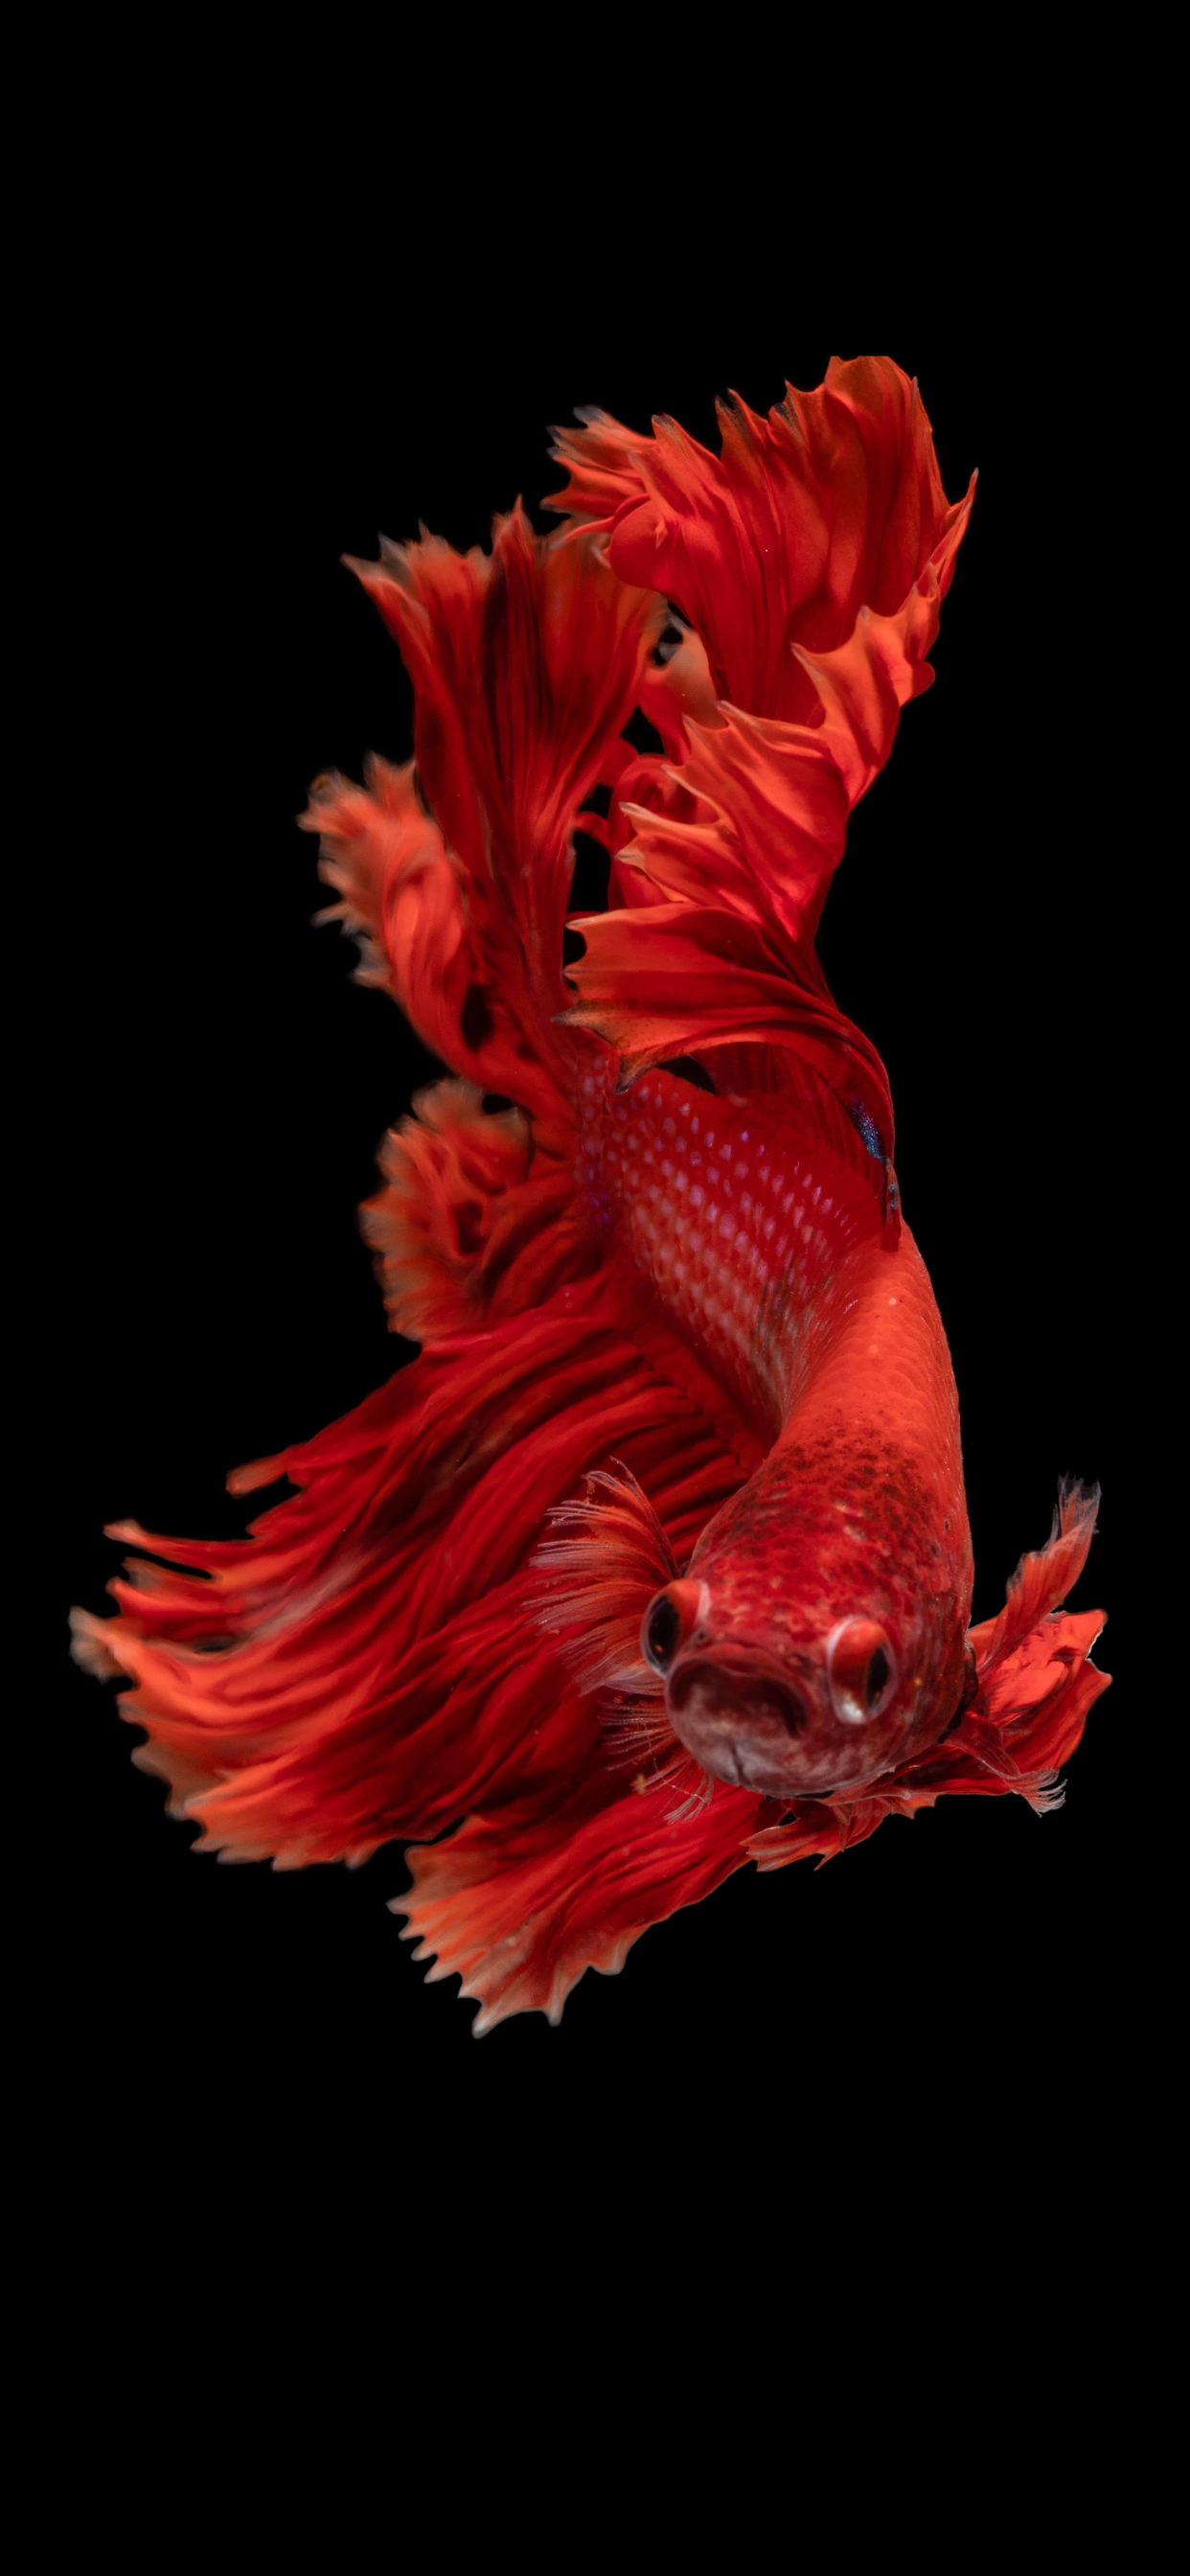 iPhone wallpapers fish red Fonds d'écran iPhone du 25/09/2019